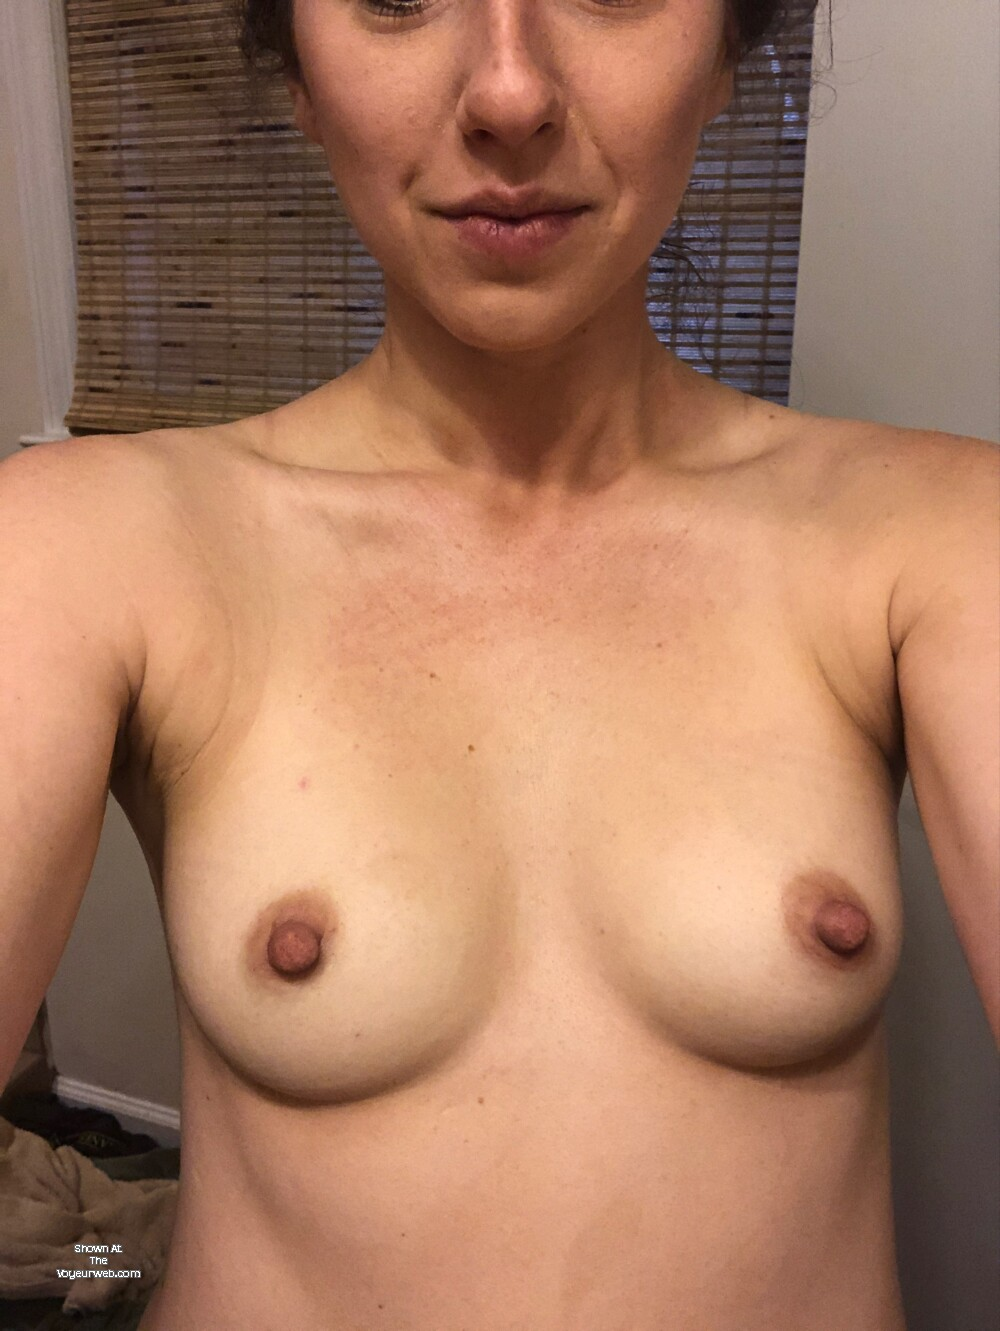 Small Tits Of My Wife - Kel Thick Nipples - May, 2019 -3118